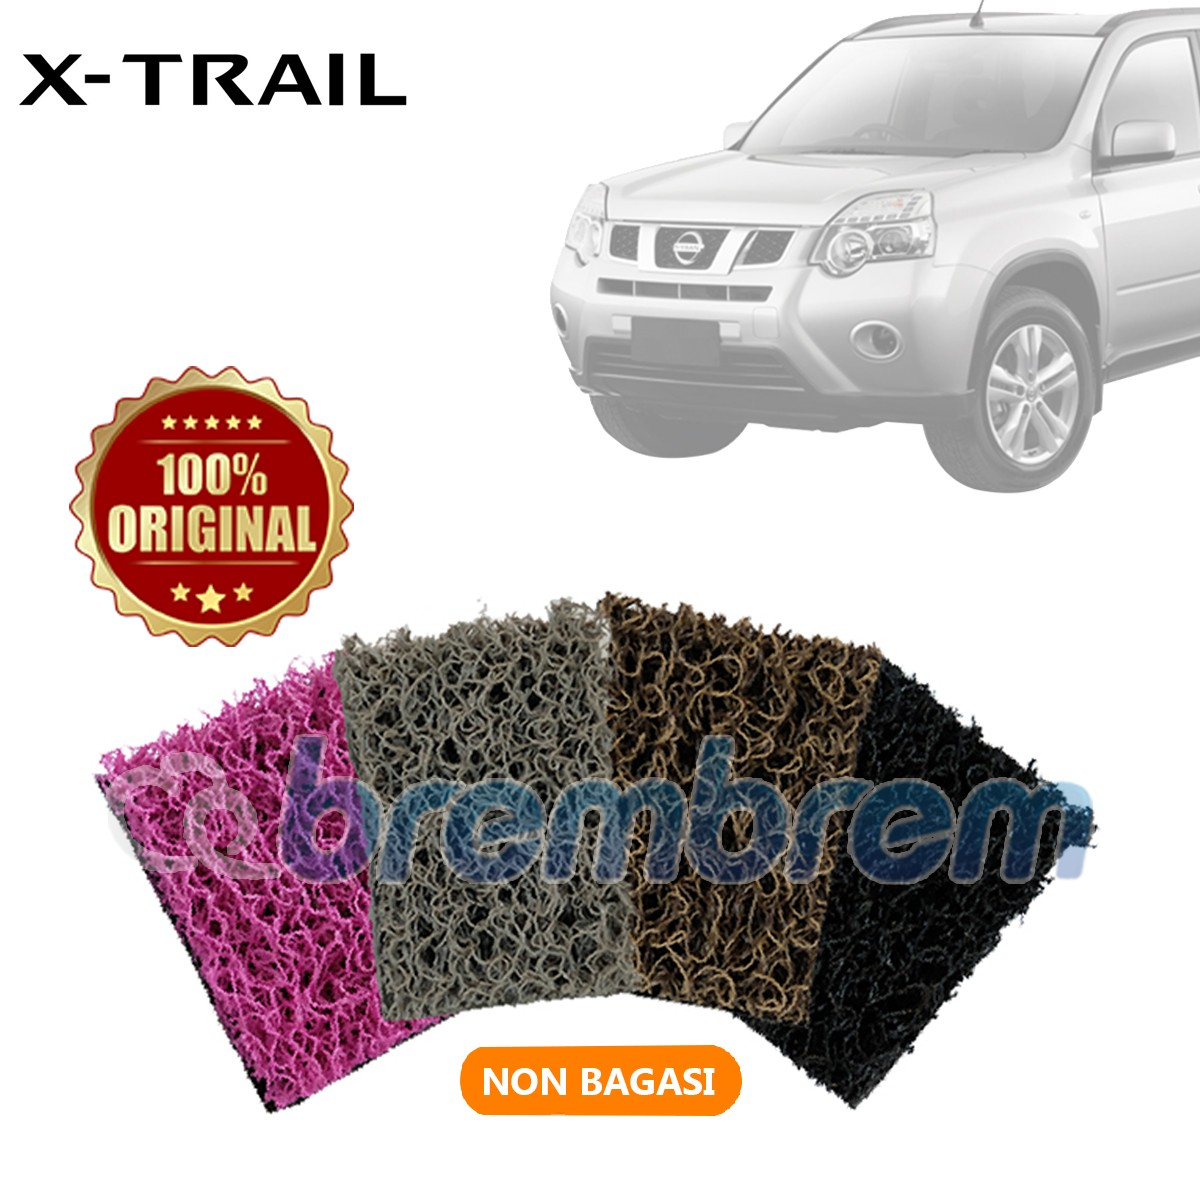 KARPET COMFORT DELUXE NON BAGASI NISSAN X-TRAIL